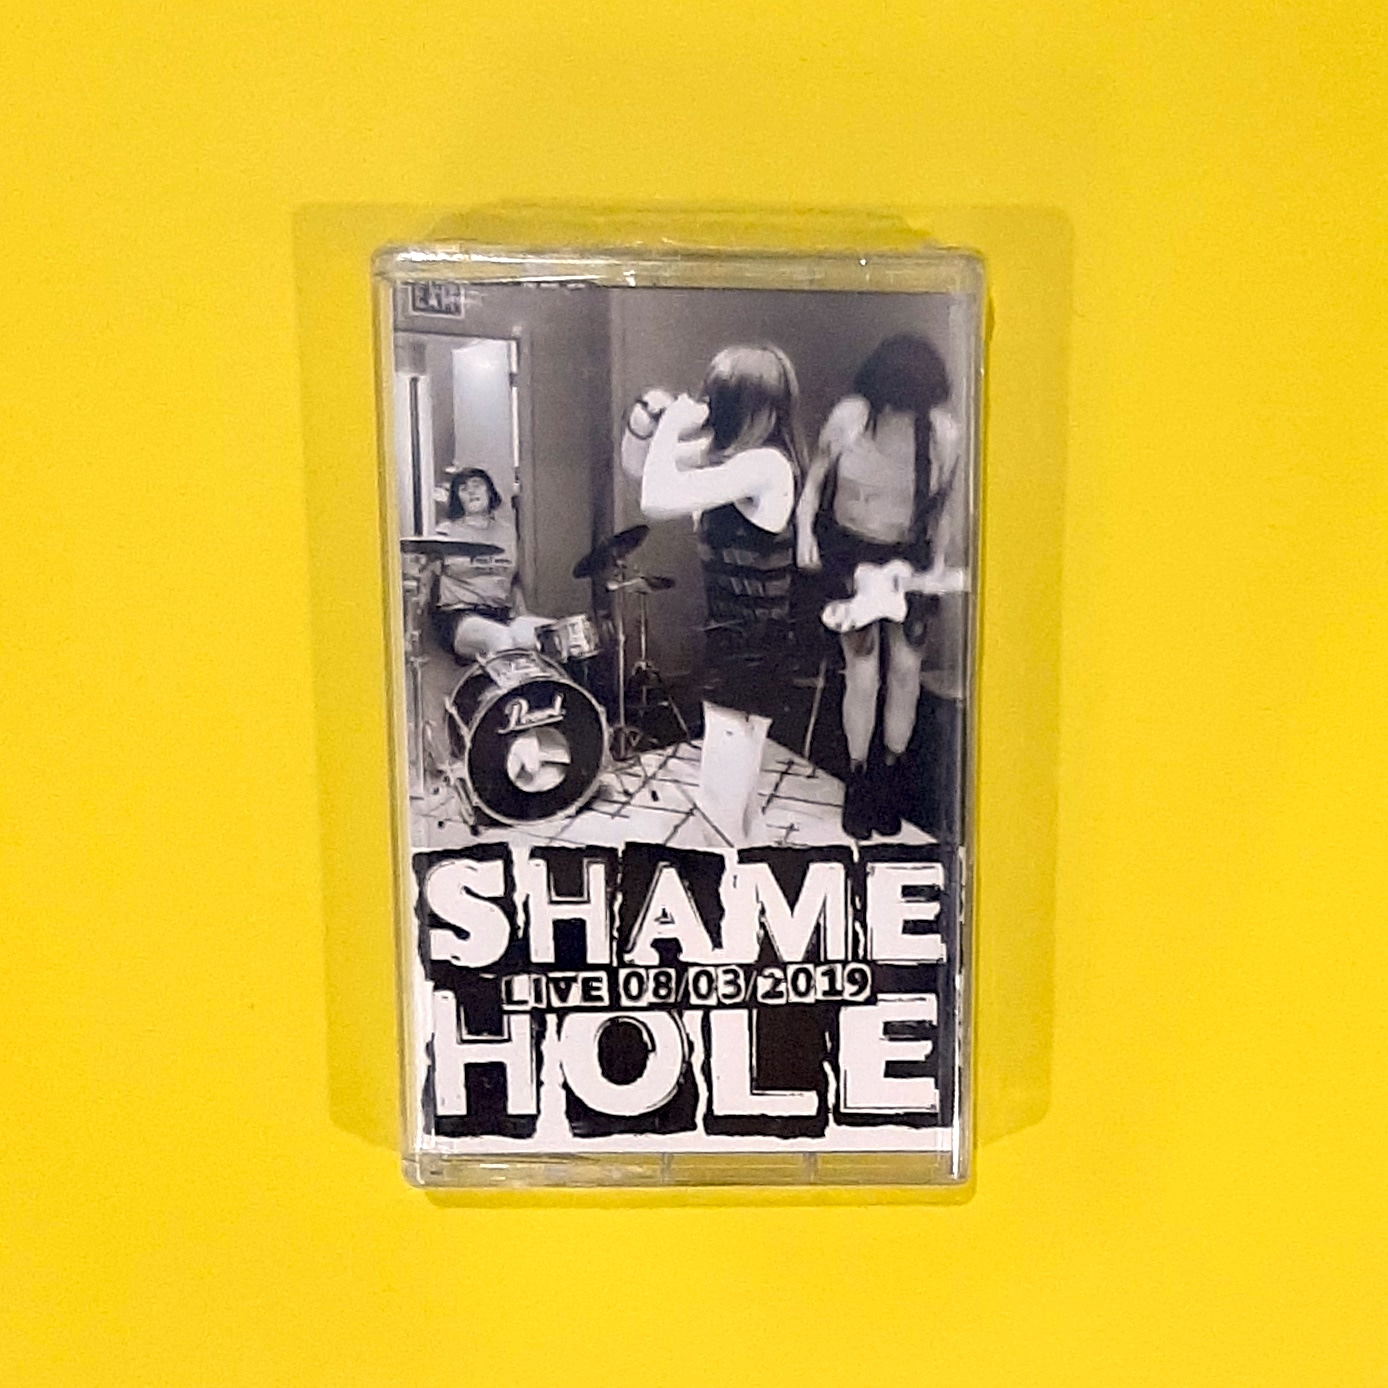 SHAME HOLE - LIVE 8​/​3​/​2019 (Gerpfast Records)